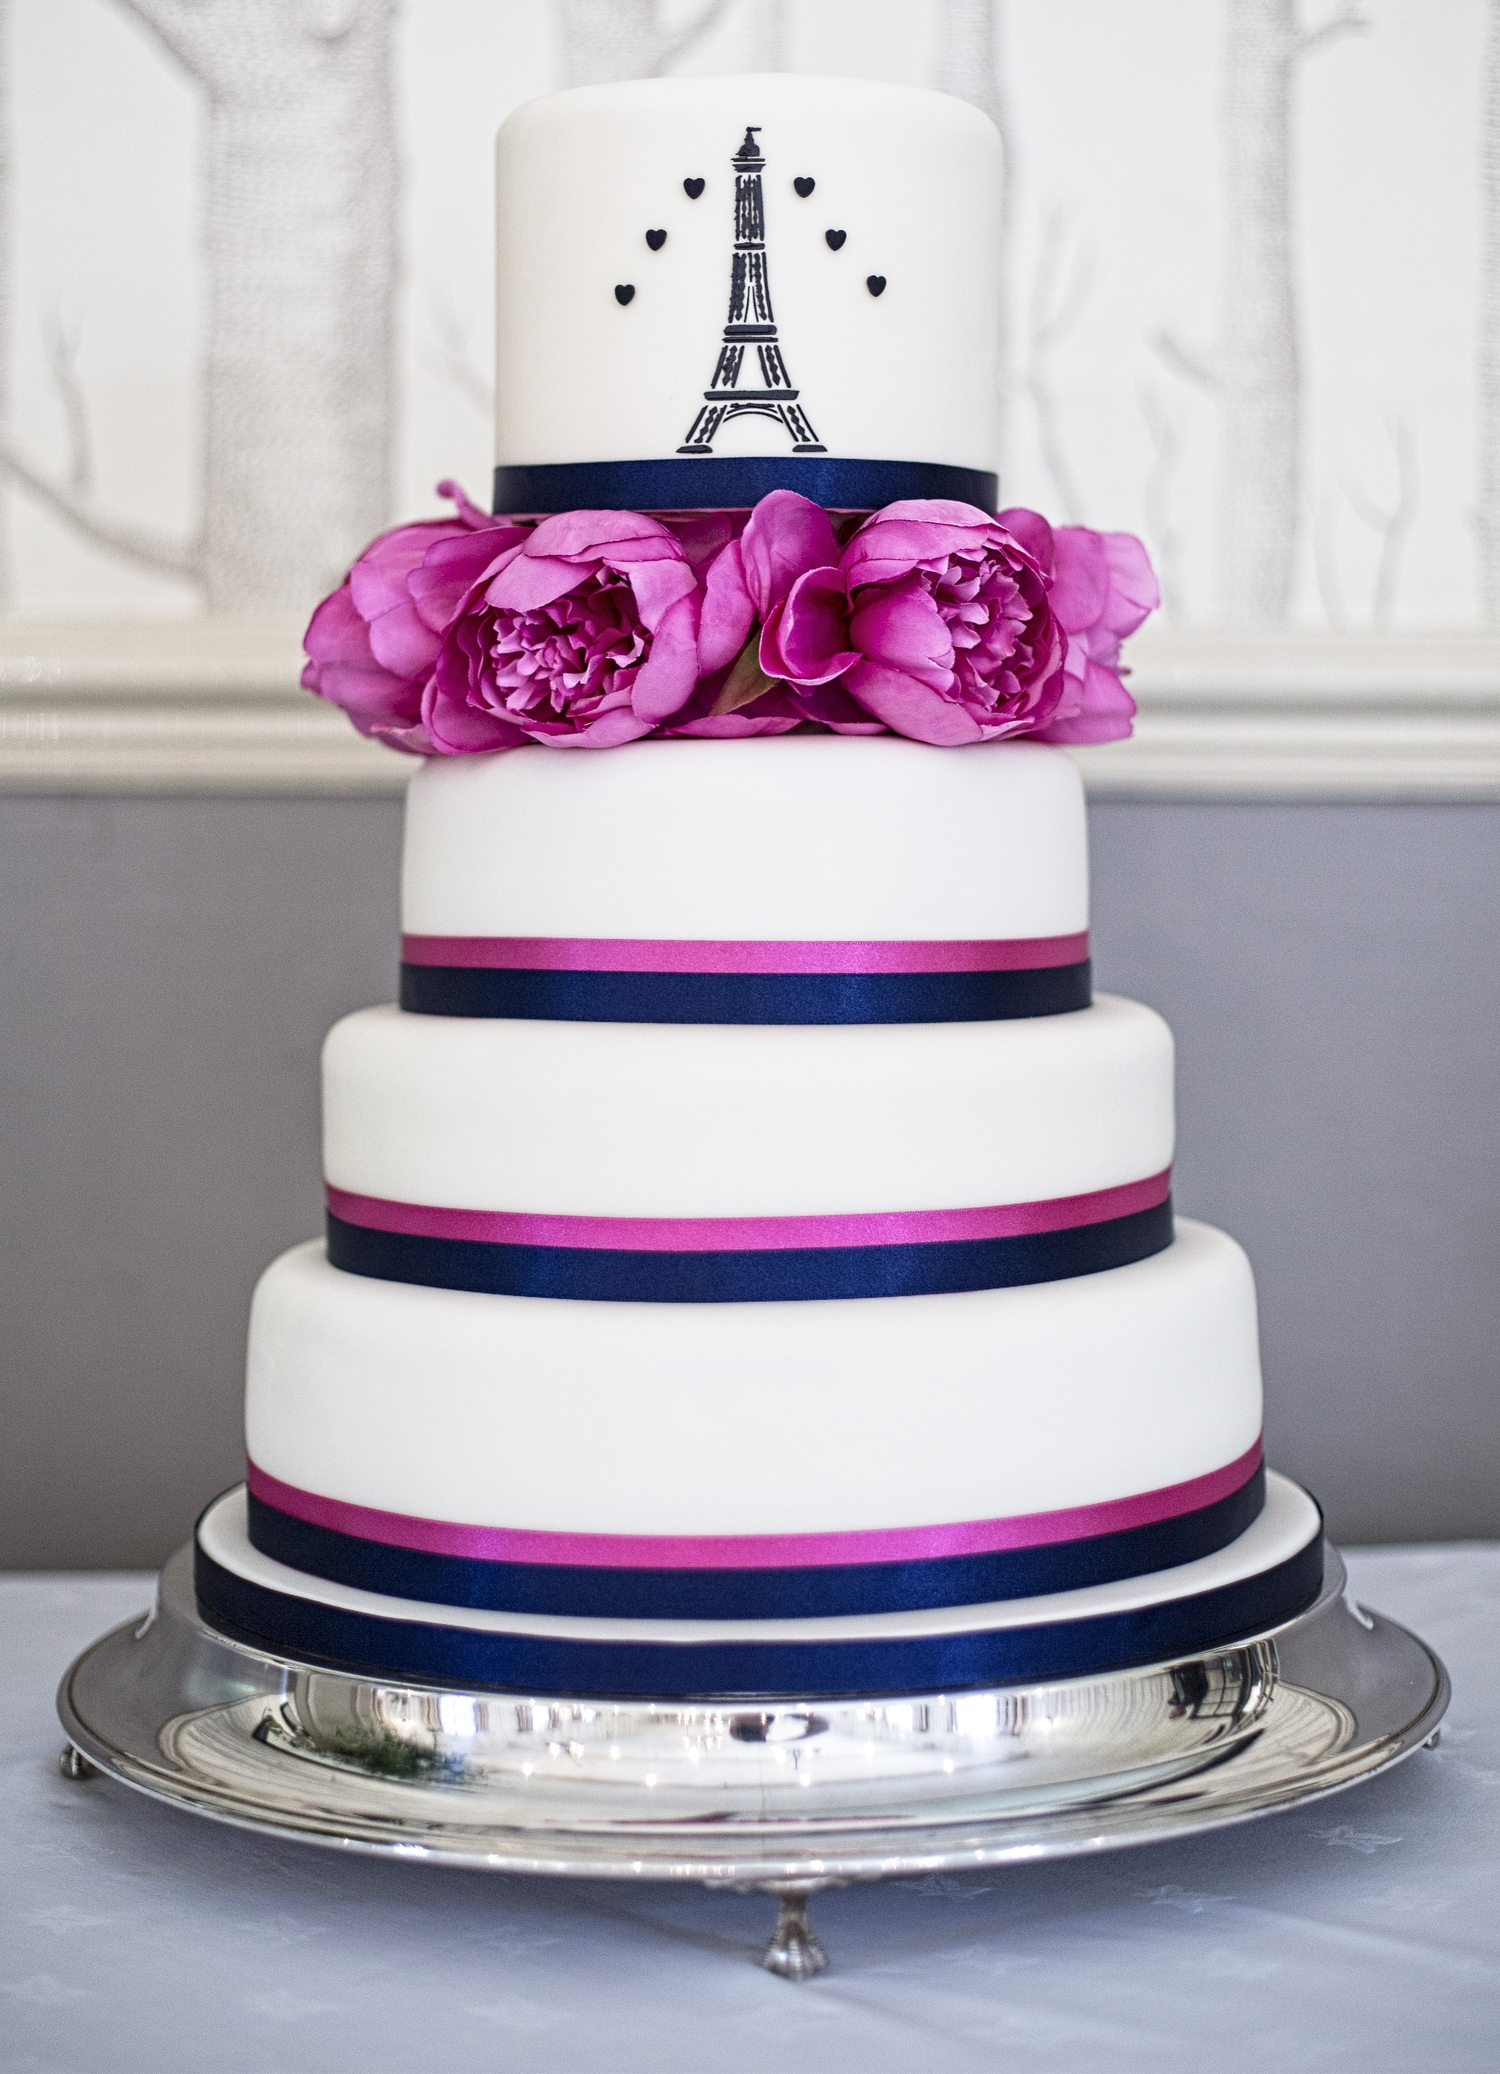 Eiffel Tower Wedding Cake.jpg